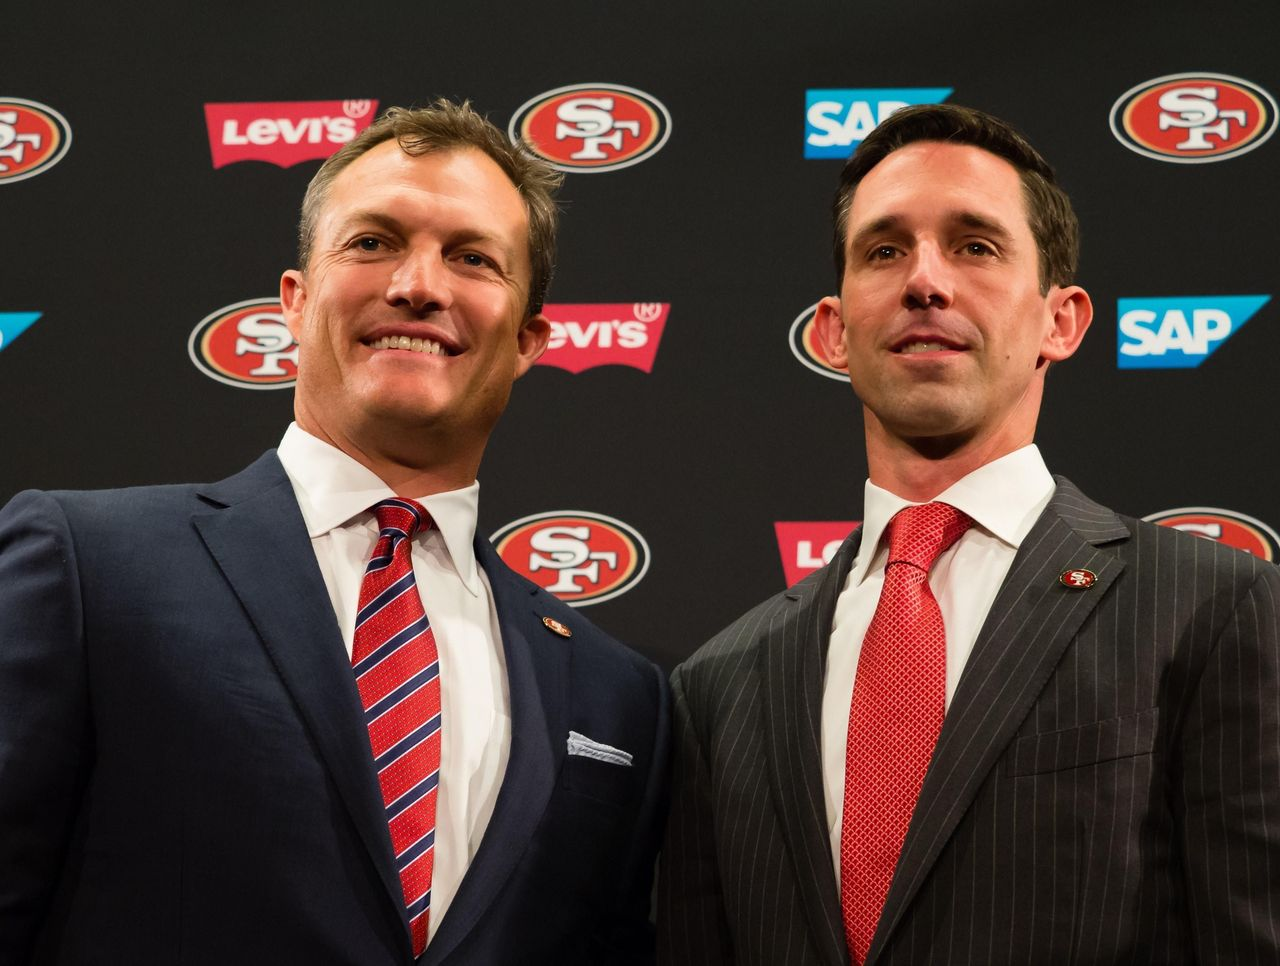 Cropped 2017 02 09t225410z 1773473785 nocid rtrmadp 3 nfl san francisco 49ers press conference